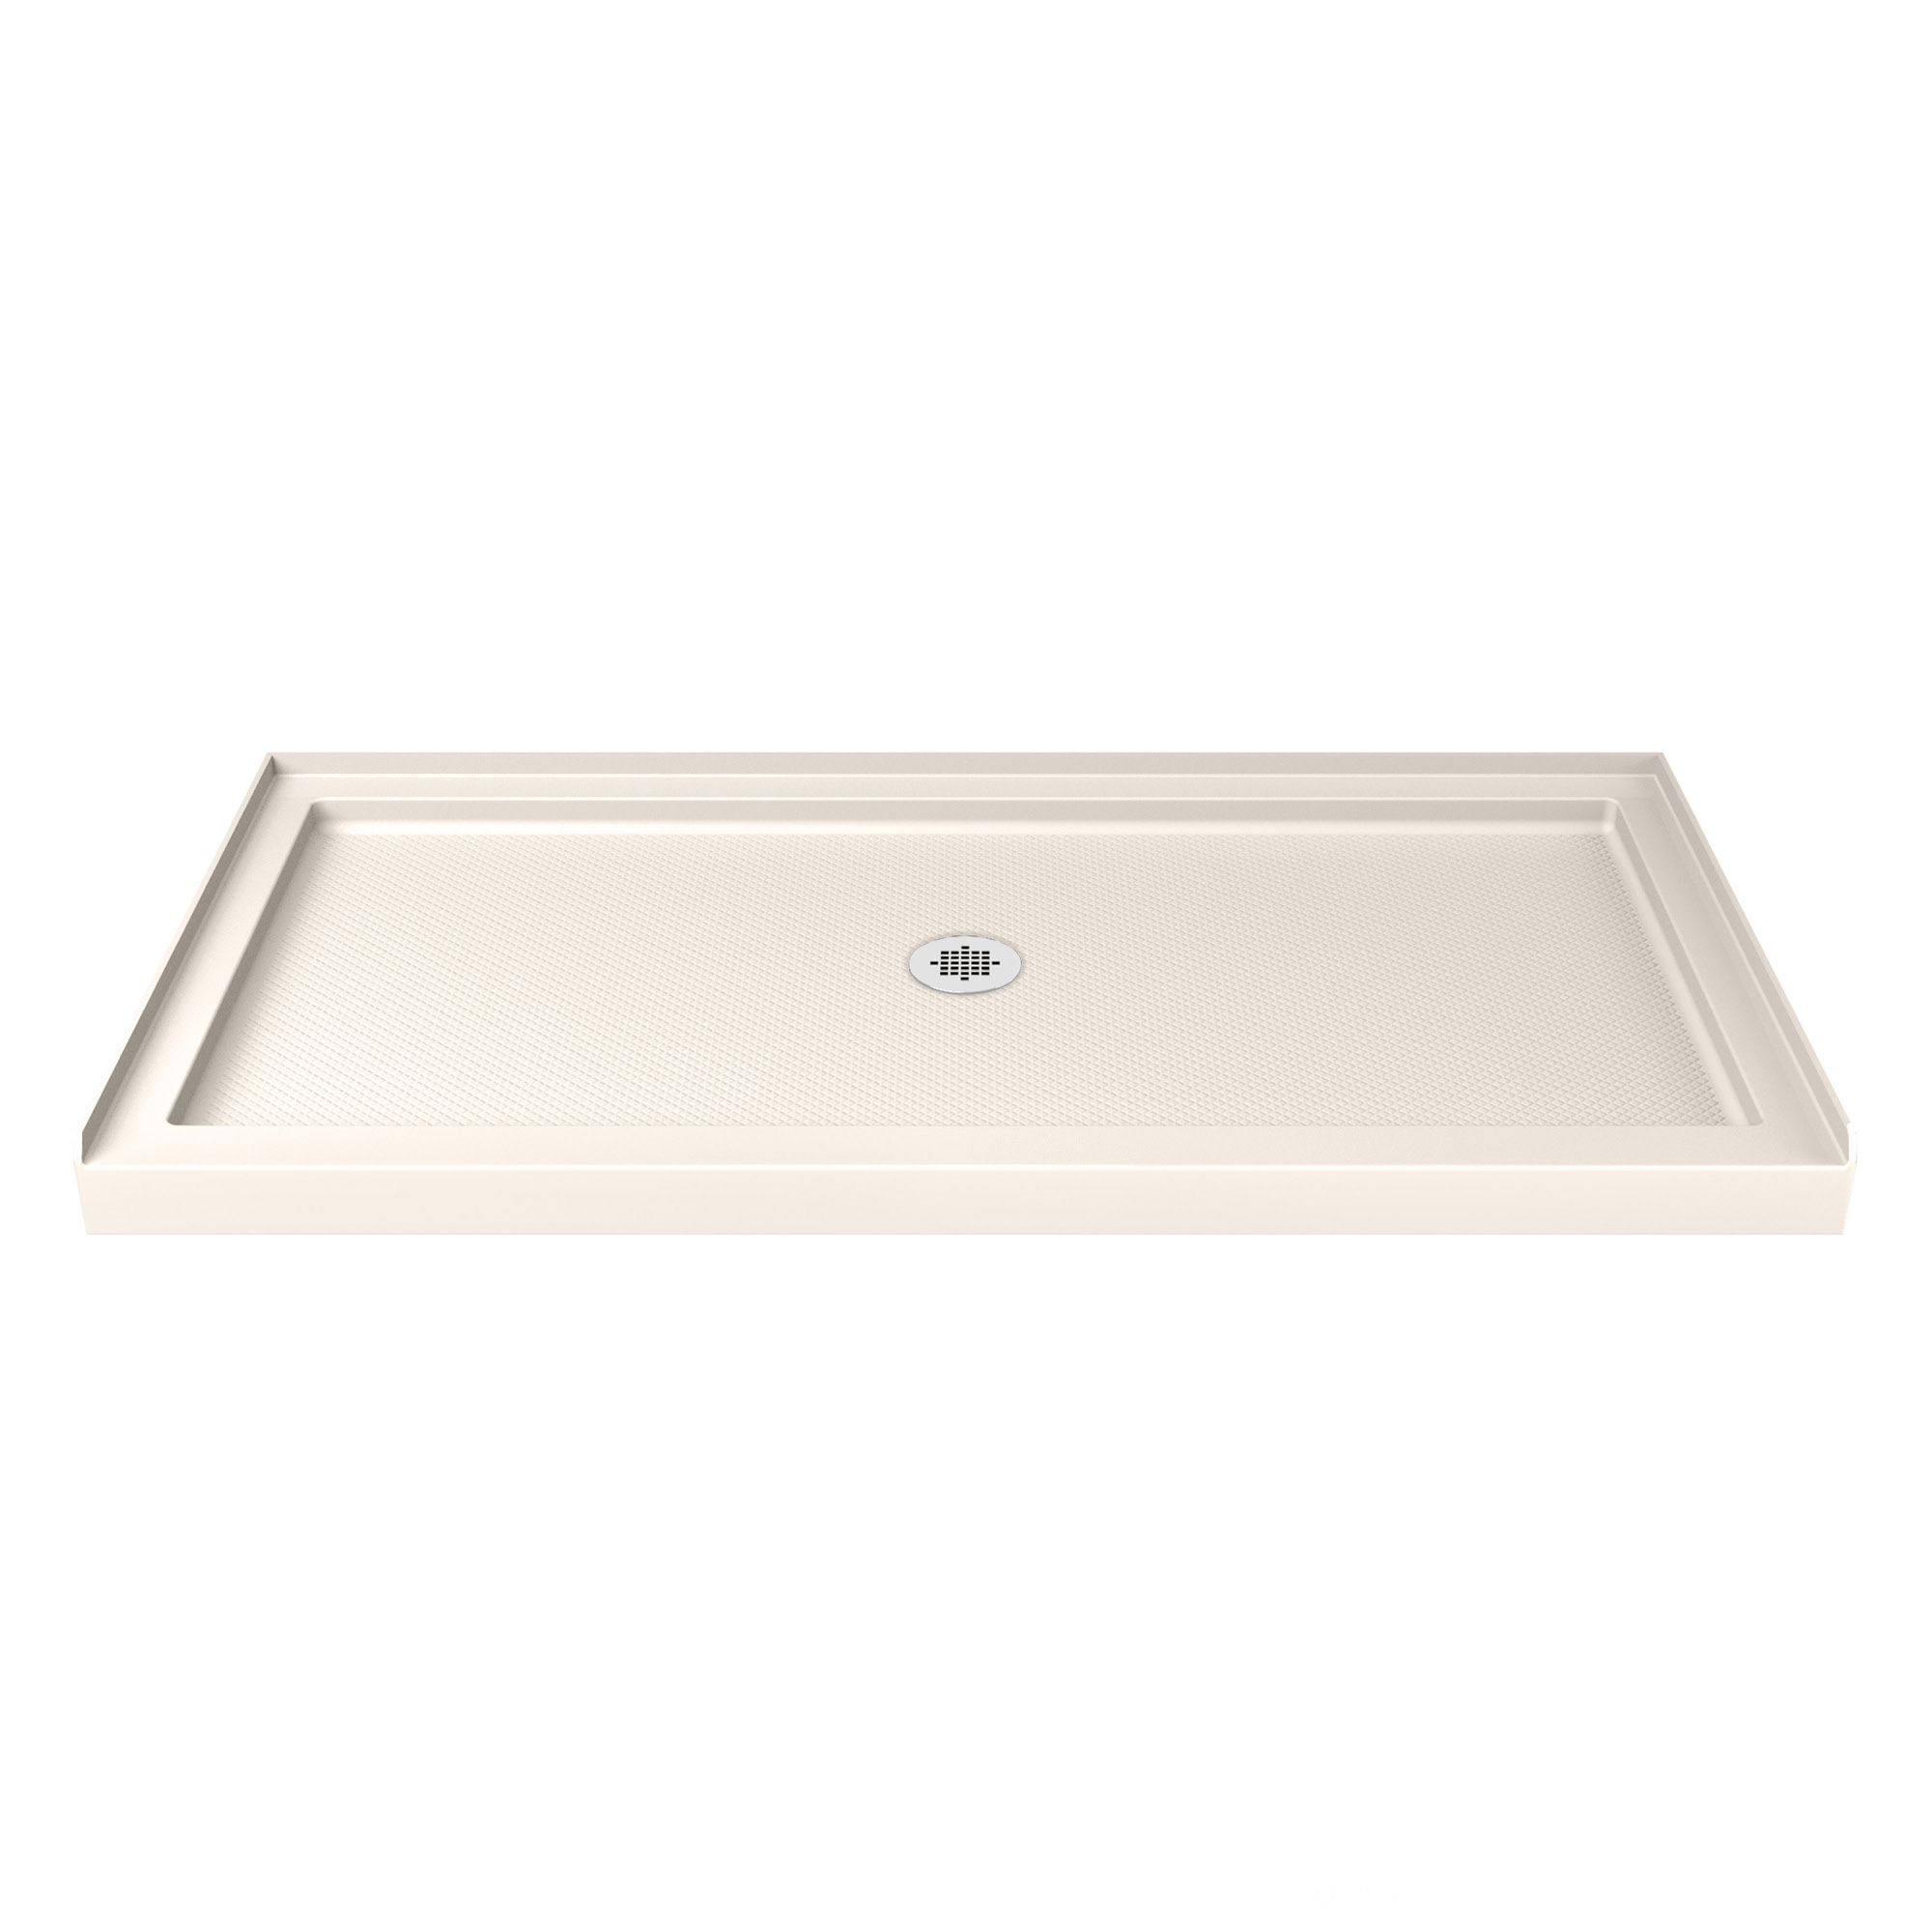 DreamLine SlimLine 32 in. D x 60 in. W x 2 3/4 in. H Center Drain Single Threshold Shower Base in White